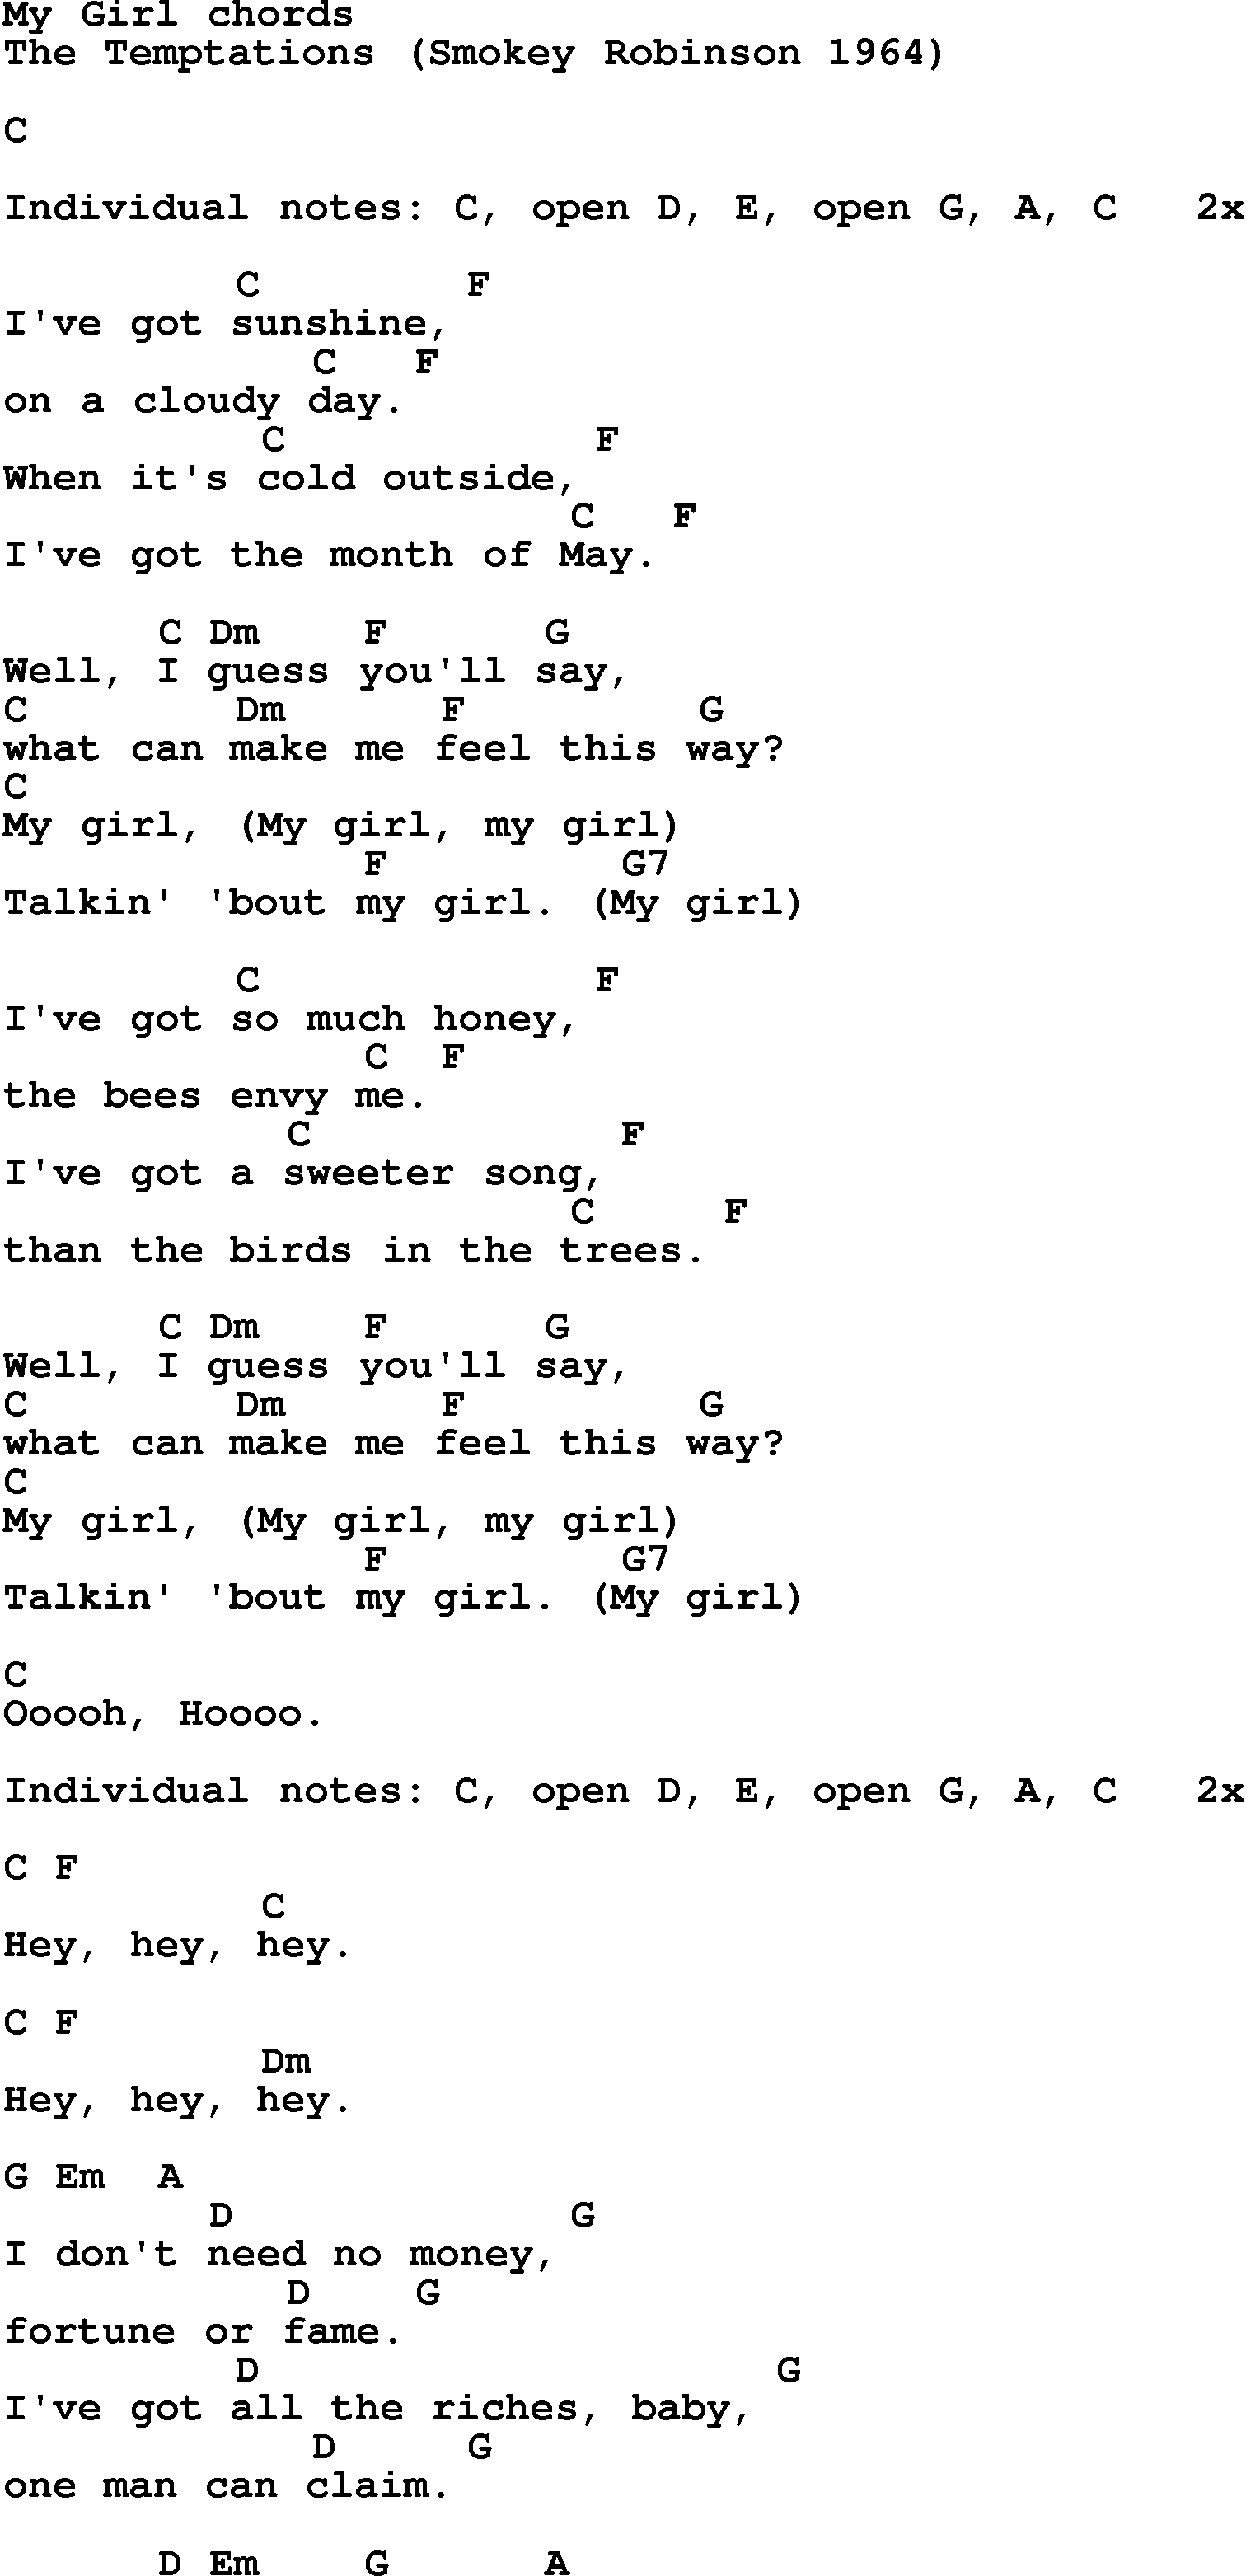 My Girl Chords Song Lyrics With Guitar Chords For My Girl